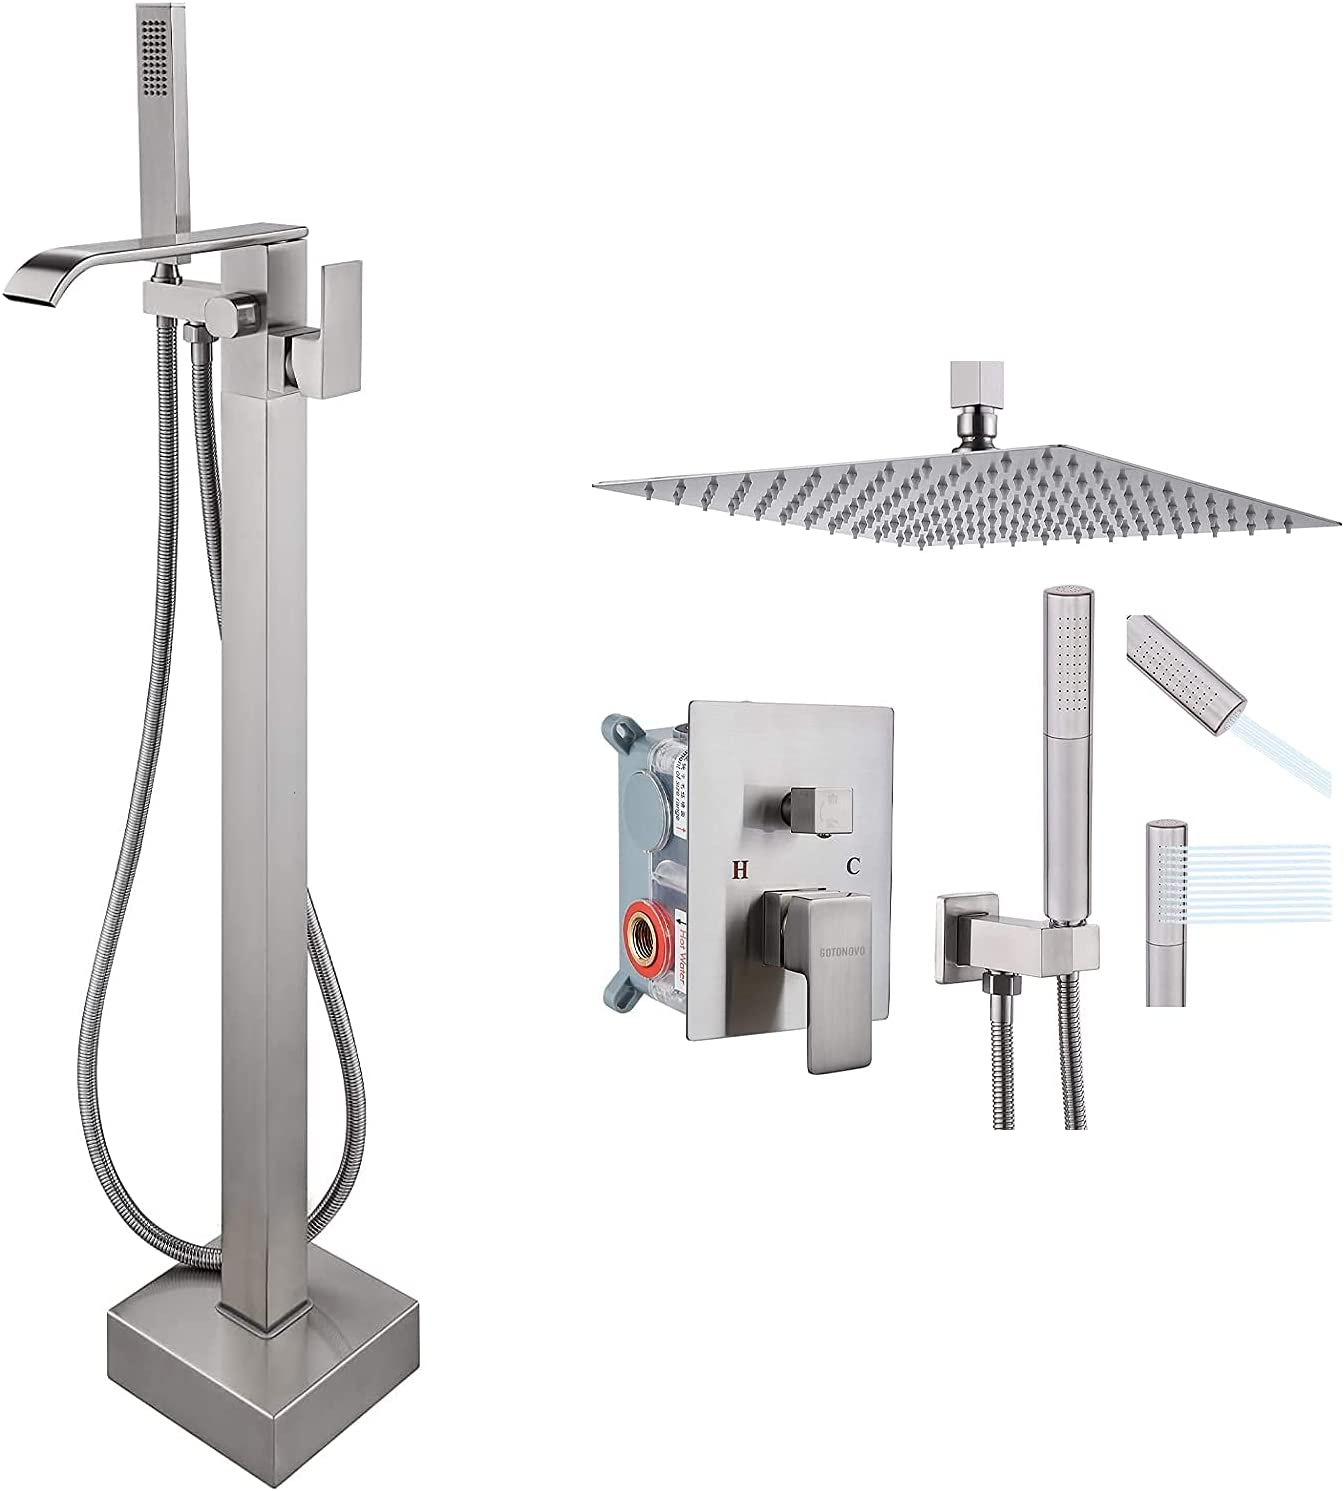 Waterfall Freestanding Bathtub Free Shipping New Faucet Floor Handle Single Mount Indianapolis Mall